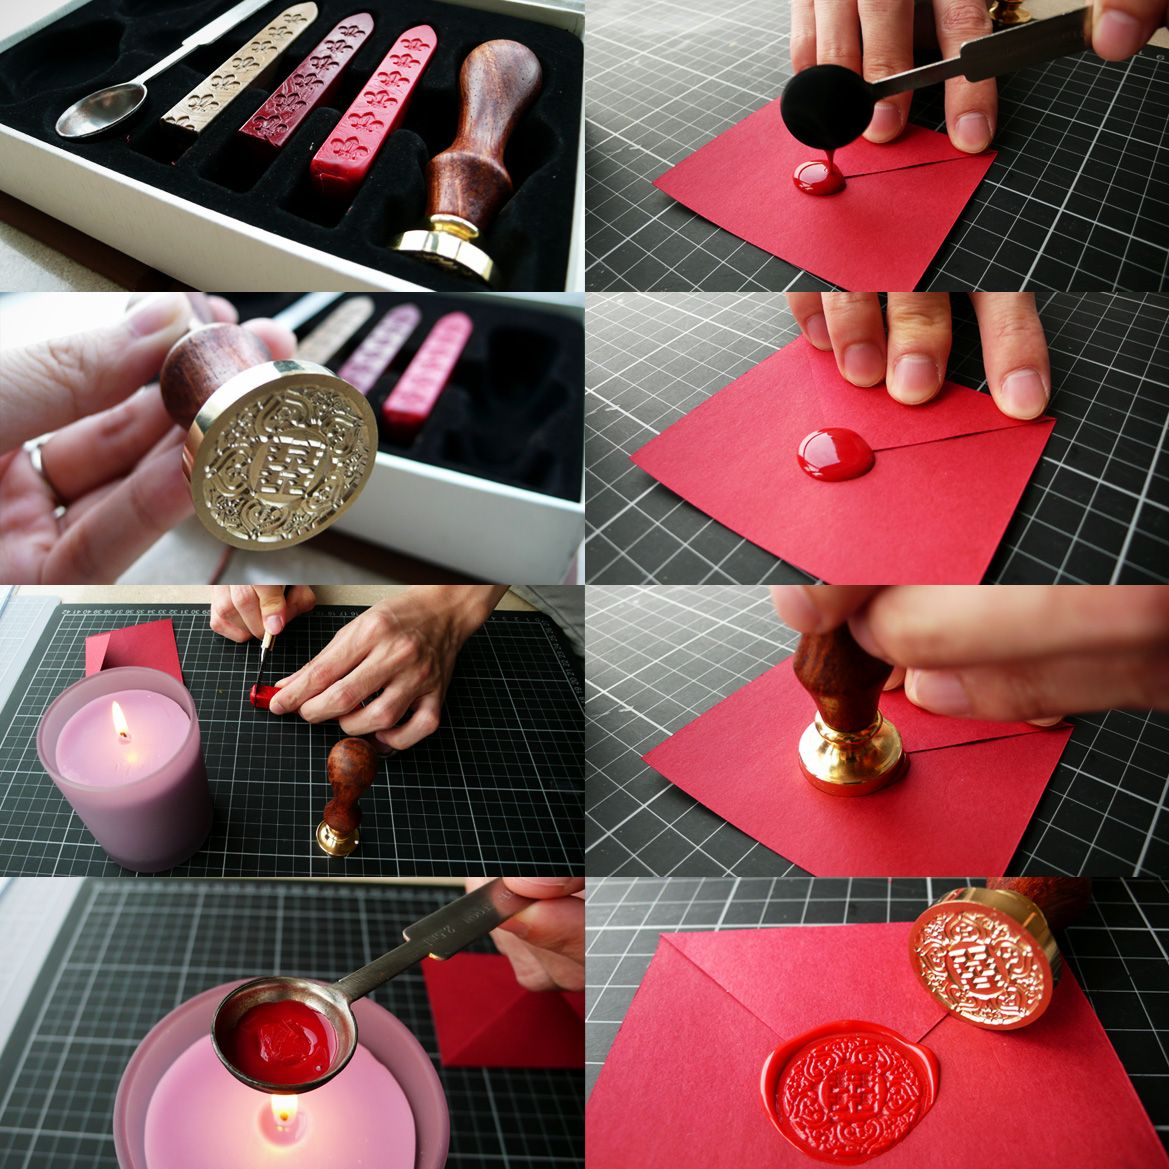 Wedding Invitation Card Wax Seal. | The Wedding in 2018 | Pinterest ...